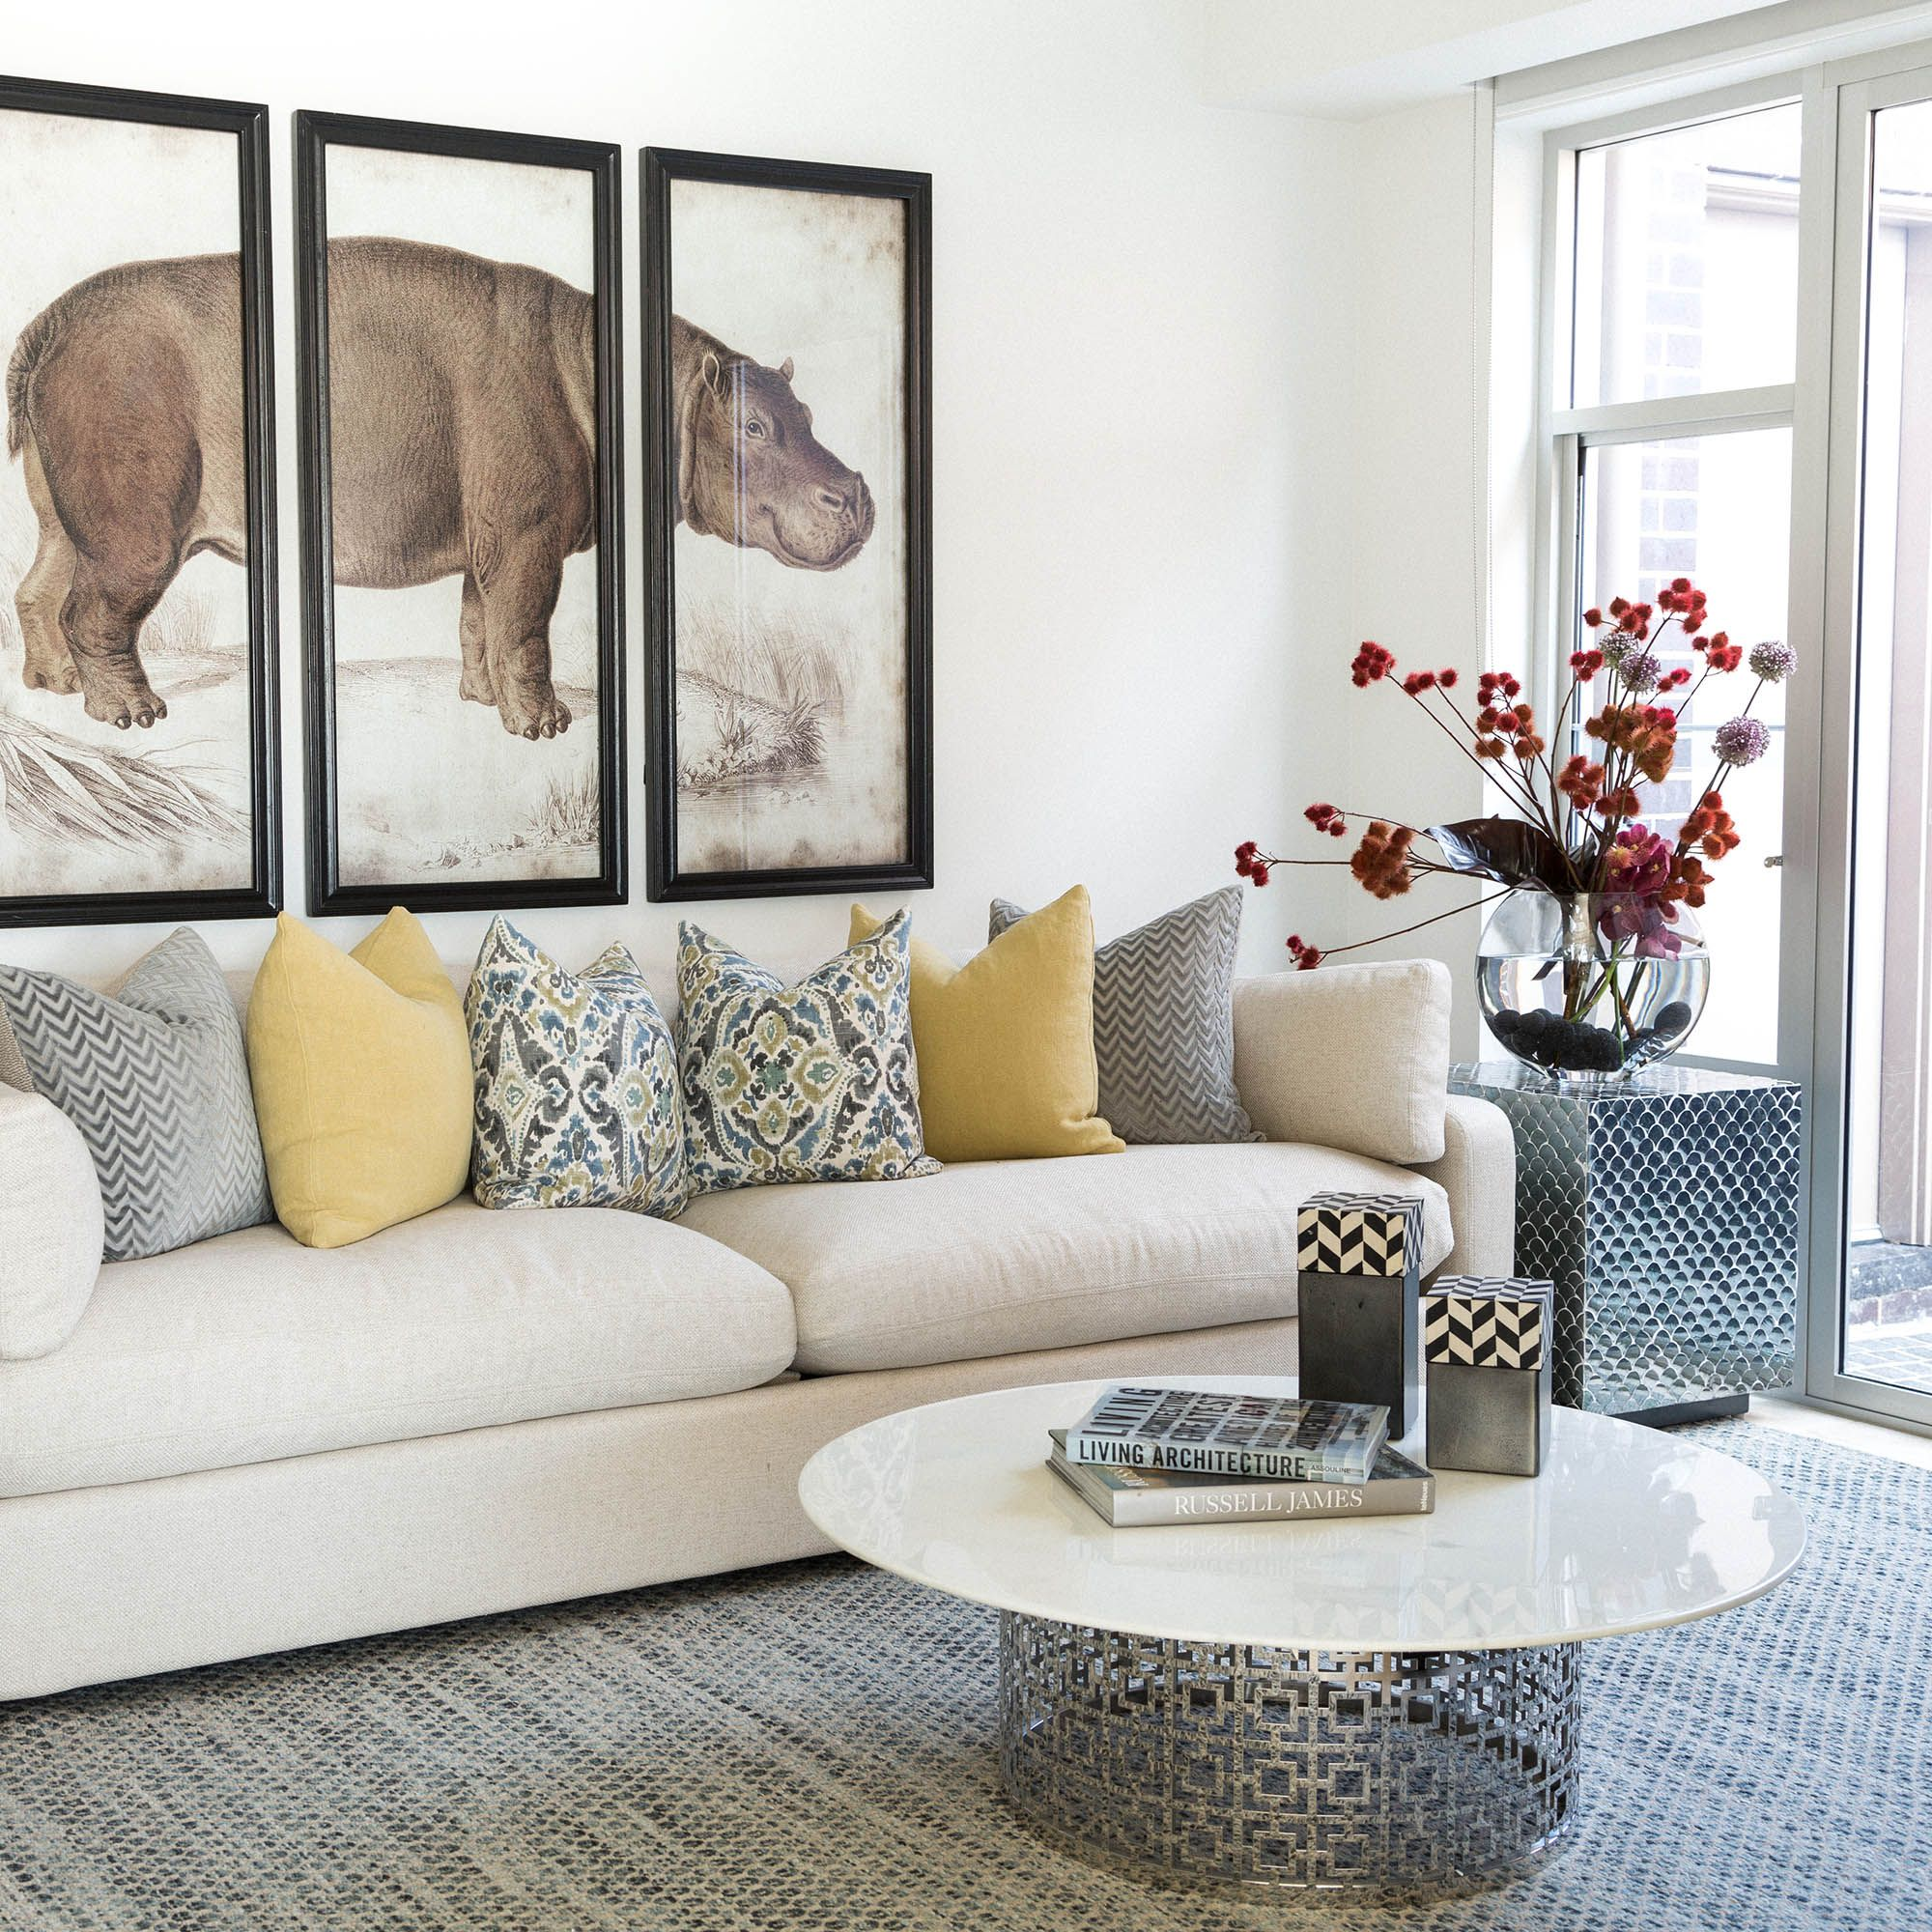 The Coco Republic Stratten Slope Arm Sofa impeccably styled with the